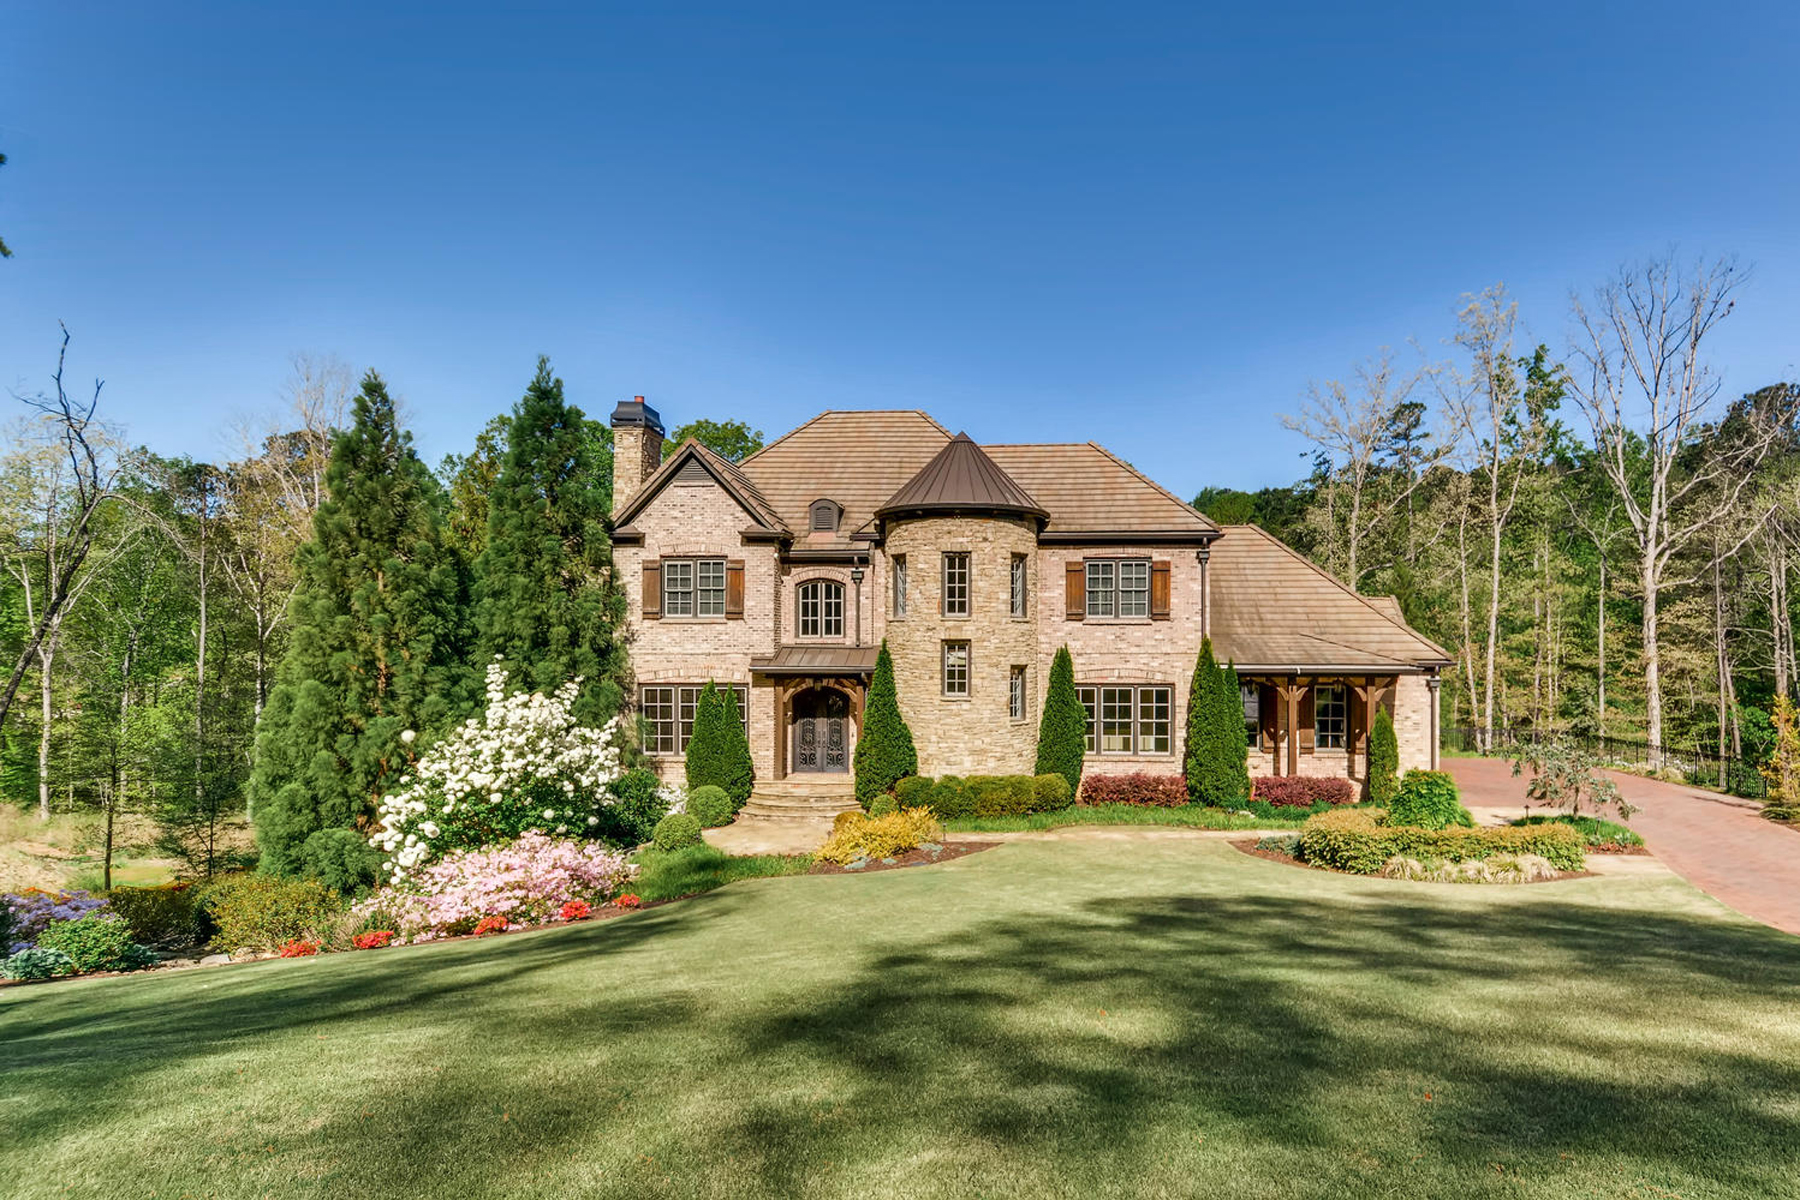 Single Family Home for Sale at Extraordinary Estate Living 9720 Almaviva Drive Johns Creek, Georgia 30022 United States